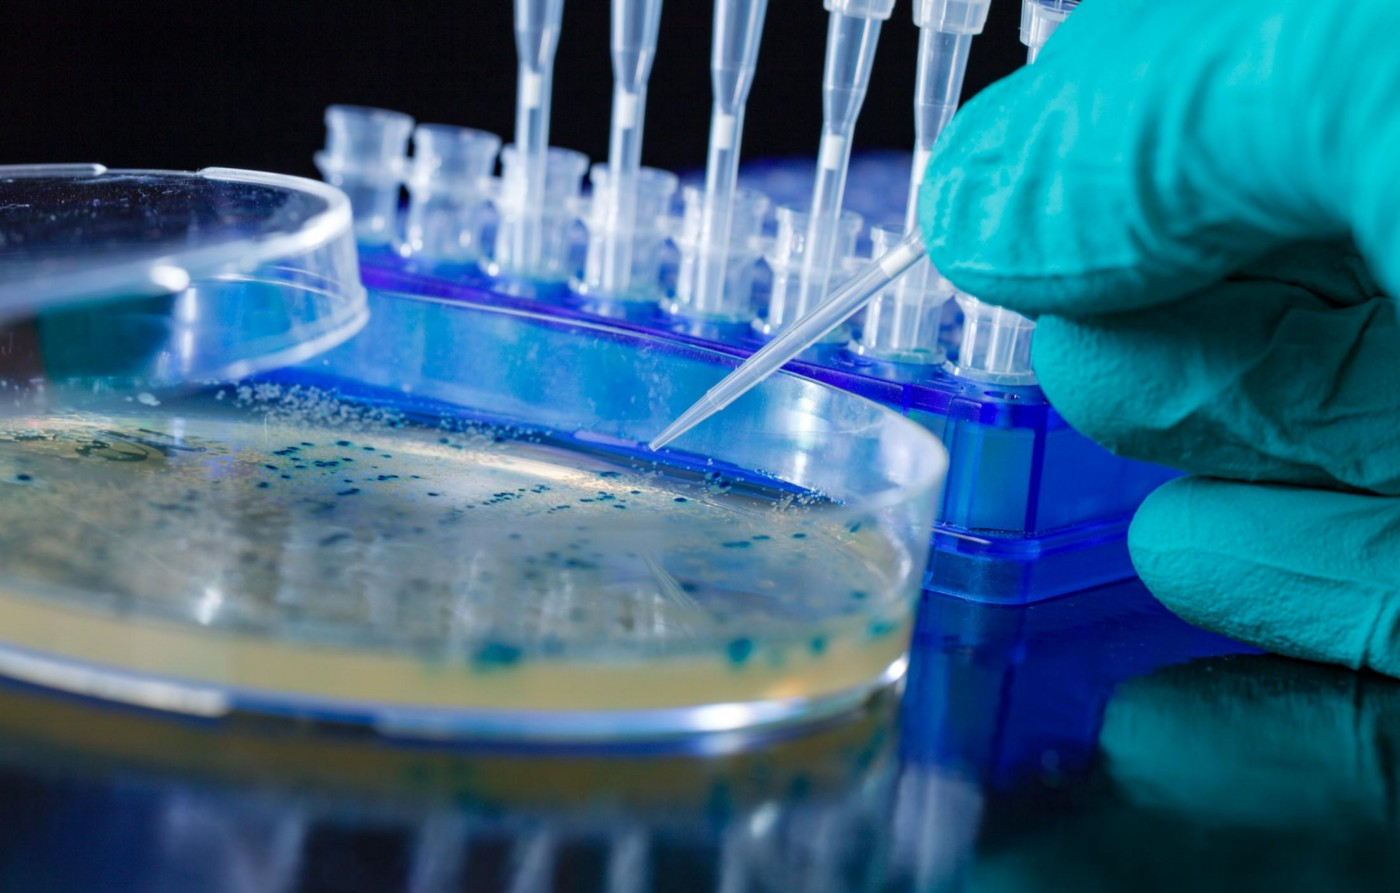 A scientist's hand picks up bacterial colonies with a tube from a petri dish.